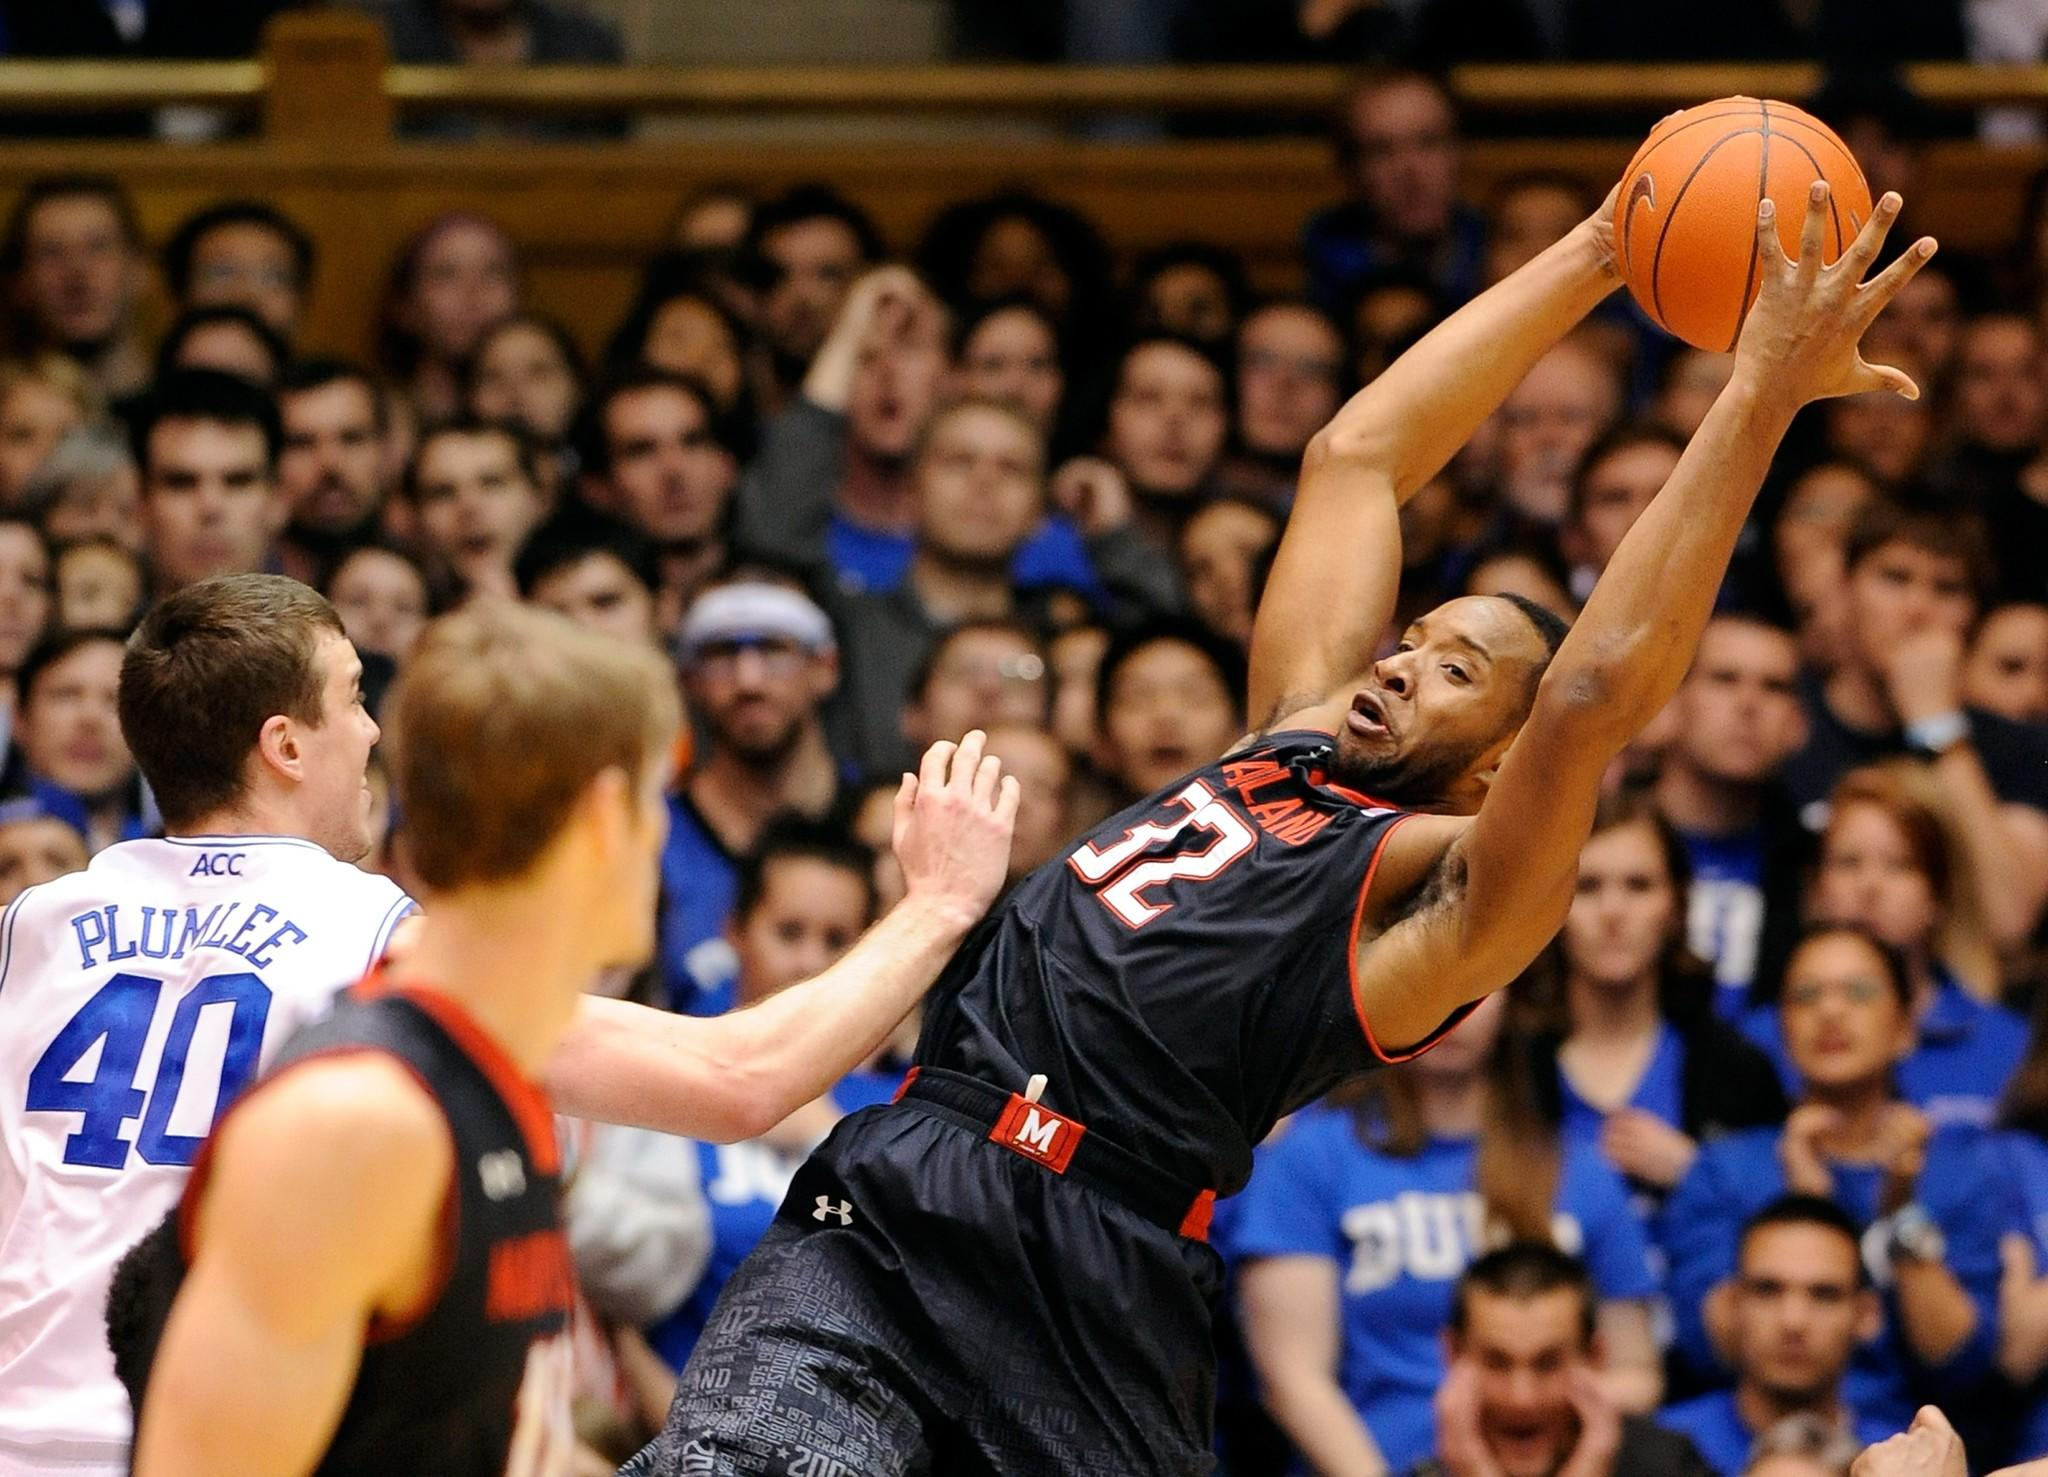 Maryland's Dez Wells pulls down a rebound against Duke's Marshall Plumlee.